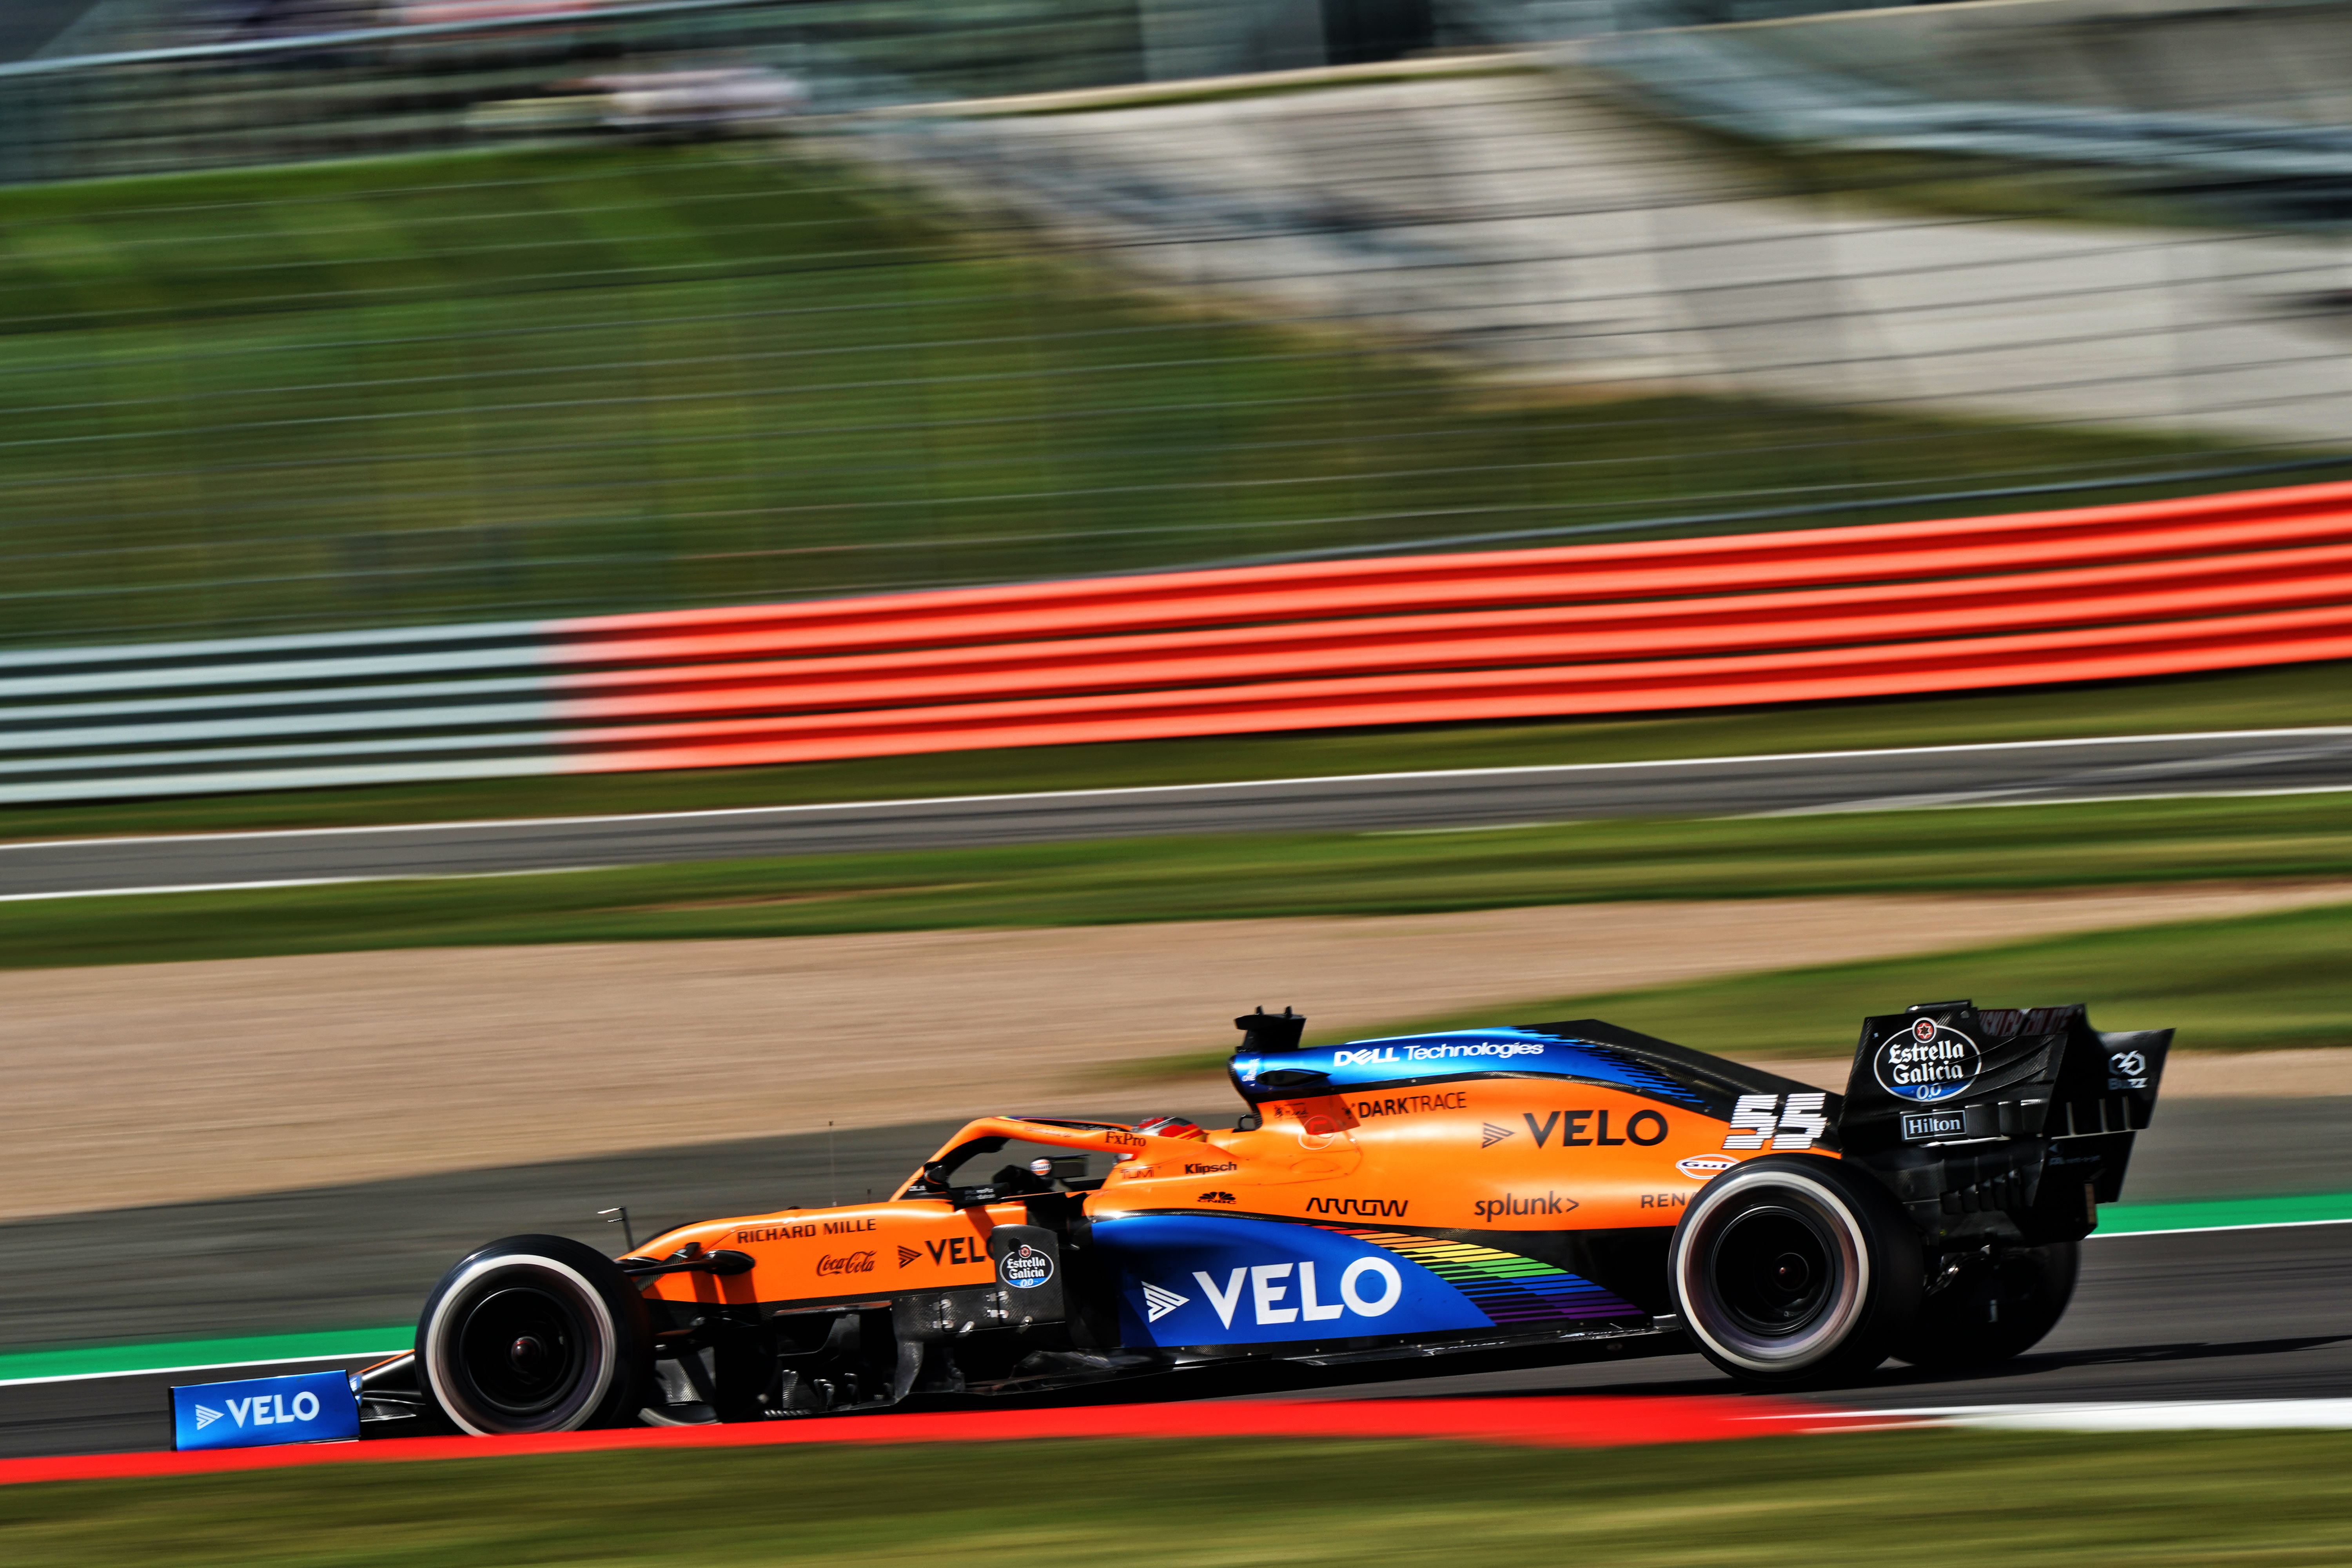 Mclaren Advancing With F1 Masterplan Major Works Resuming The Race